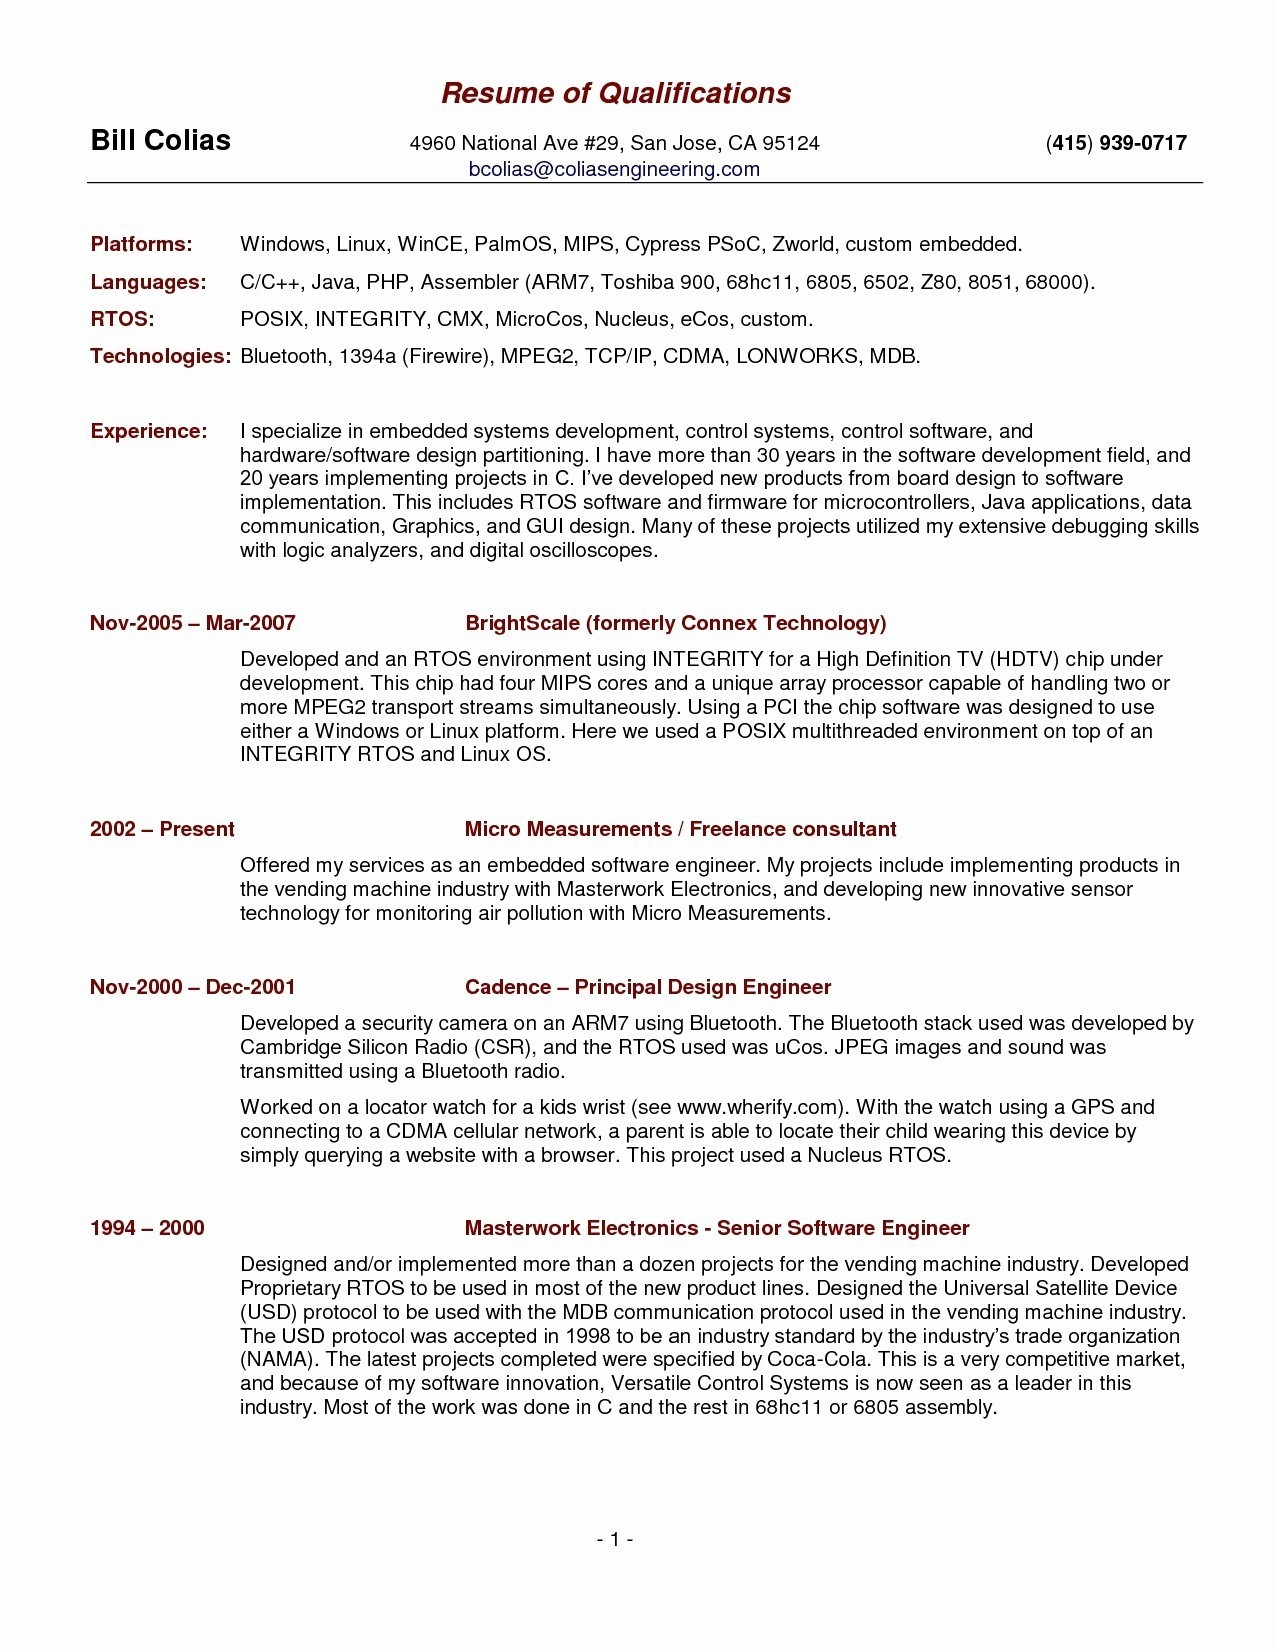 Leed Letter Template - Sample Server Resume Best Elegant Pr Resume Template Elegant